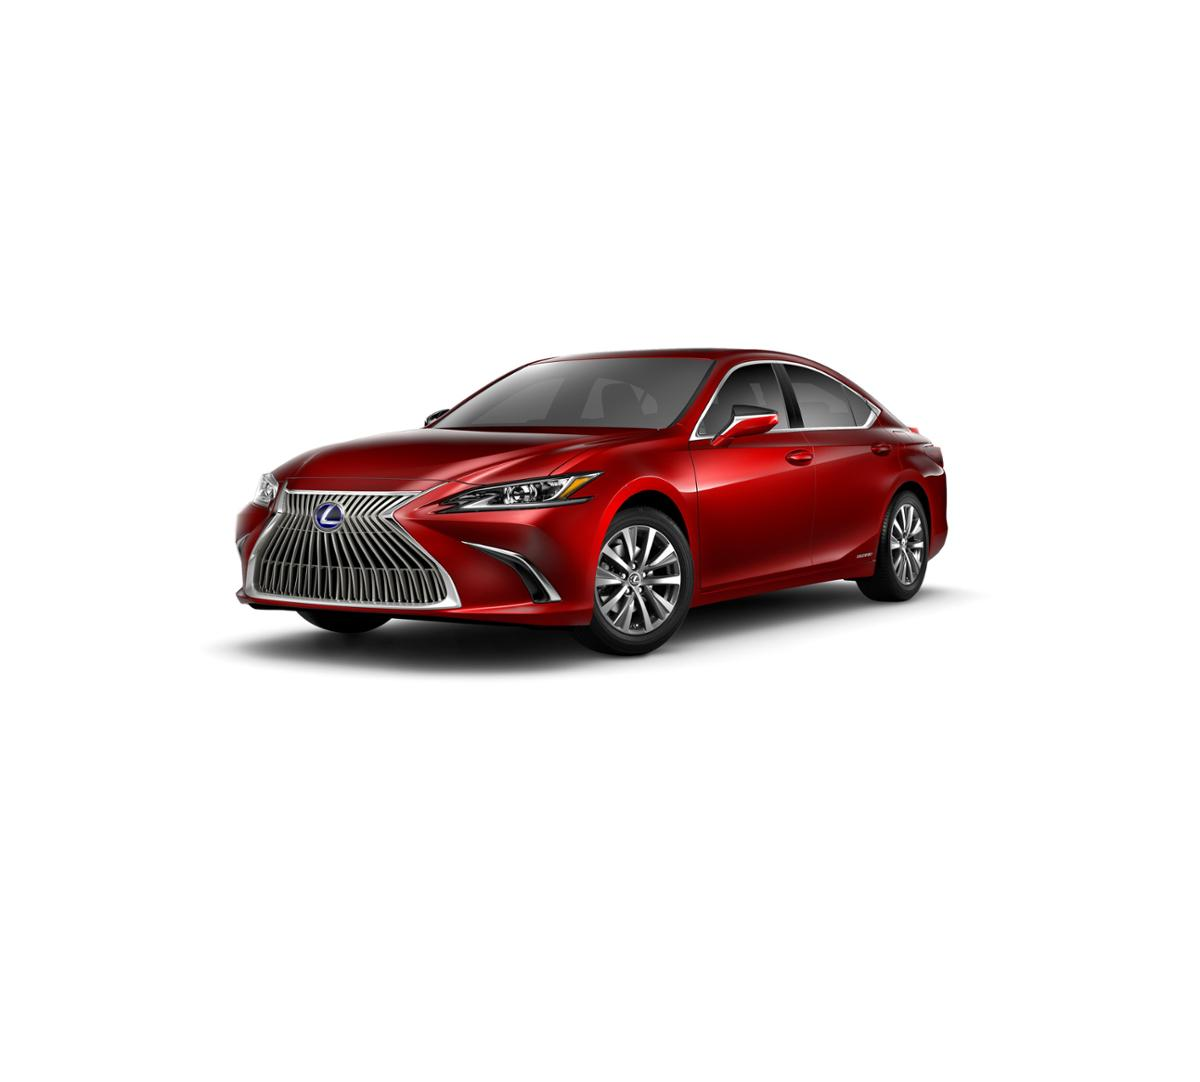 2019 Lexus ES 300h Vehicle Photo in Evansville, IN 47715